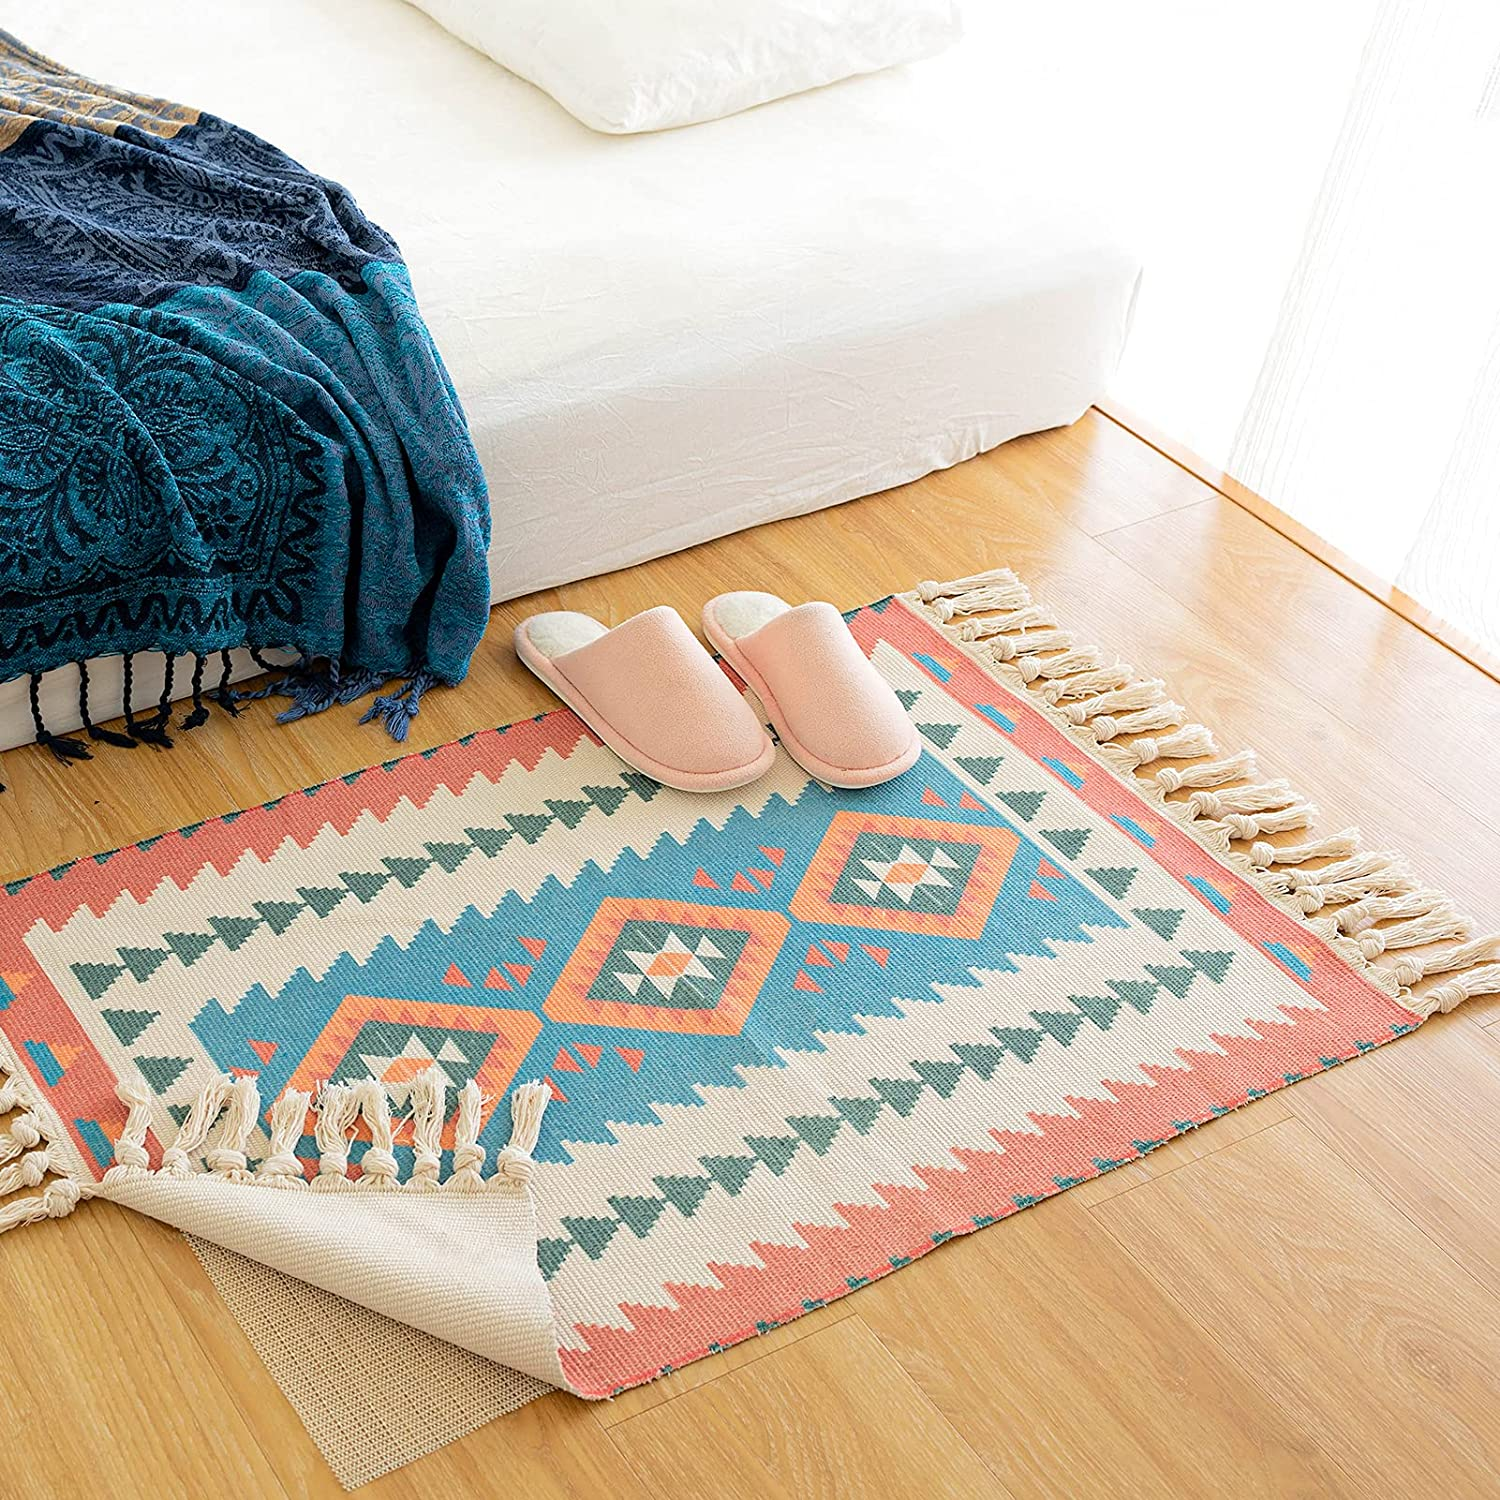 Boho Bedroom Area Rug 2'x5' Rugs Kitchen Ranking TOP2 with Moroccan Wholesale Non-Slip